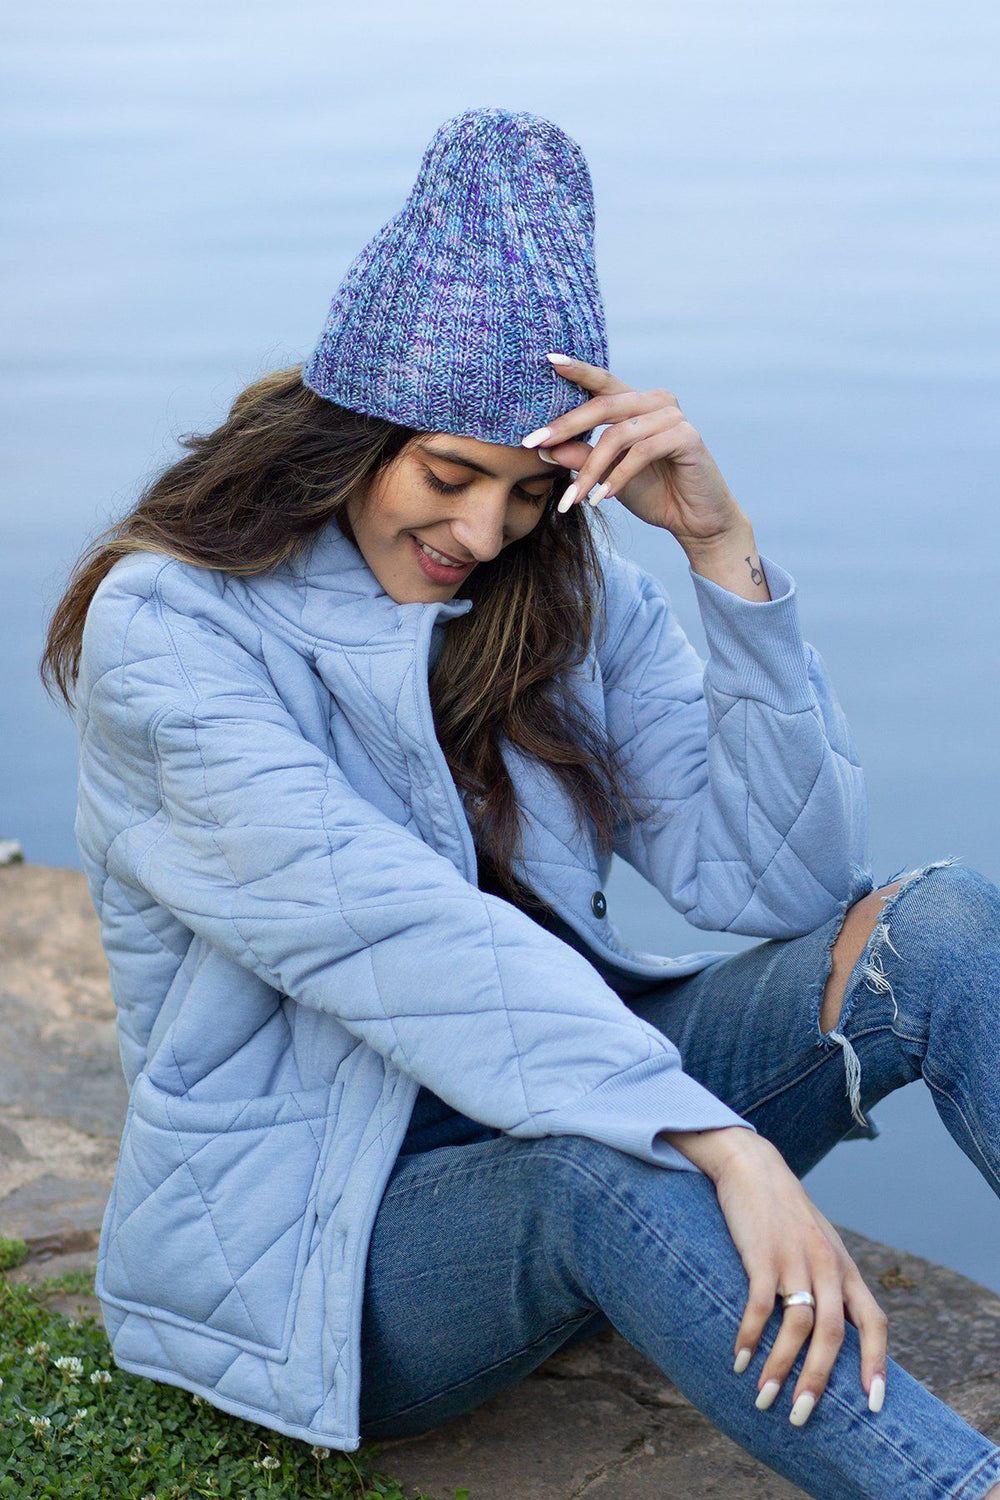 a tanned woman with long brown hair, thick eyebrows, and long white nails sits on the stone at the edge of a body of water. She's wearing a light blue down jacket, blue jeans, and a marled blue handknit ribbed hat. She's leaning her left elbow on her bent knee and touching the brim of the hat with the same hand. Her right hand is resting on her right calf.